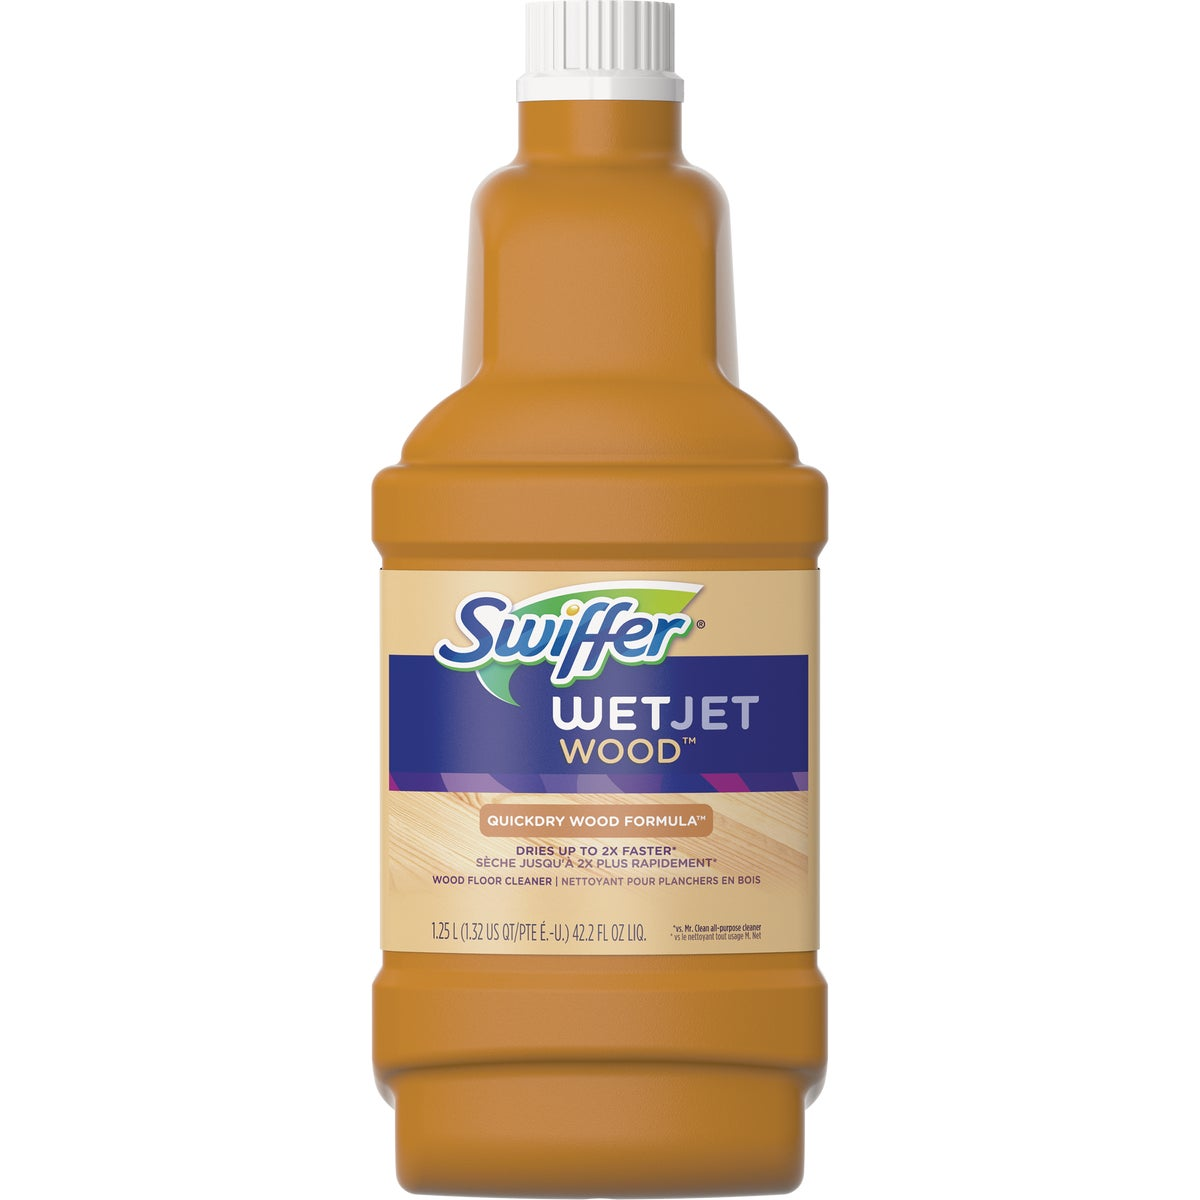 WOOD WETJET CLEANER - 23682 by Procter & Gamble